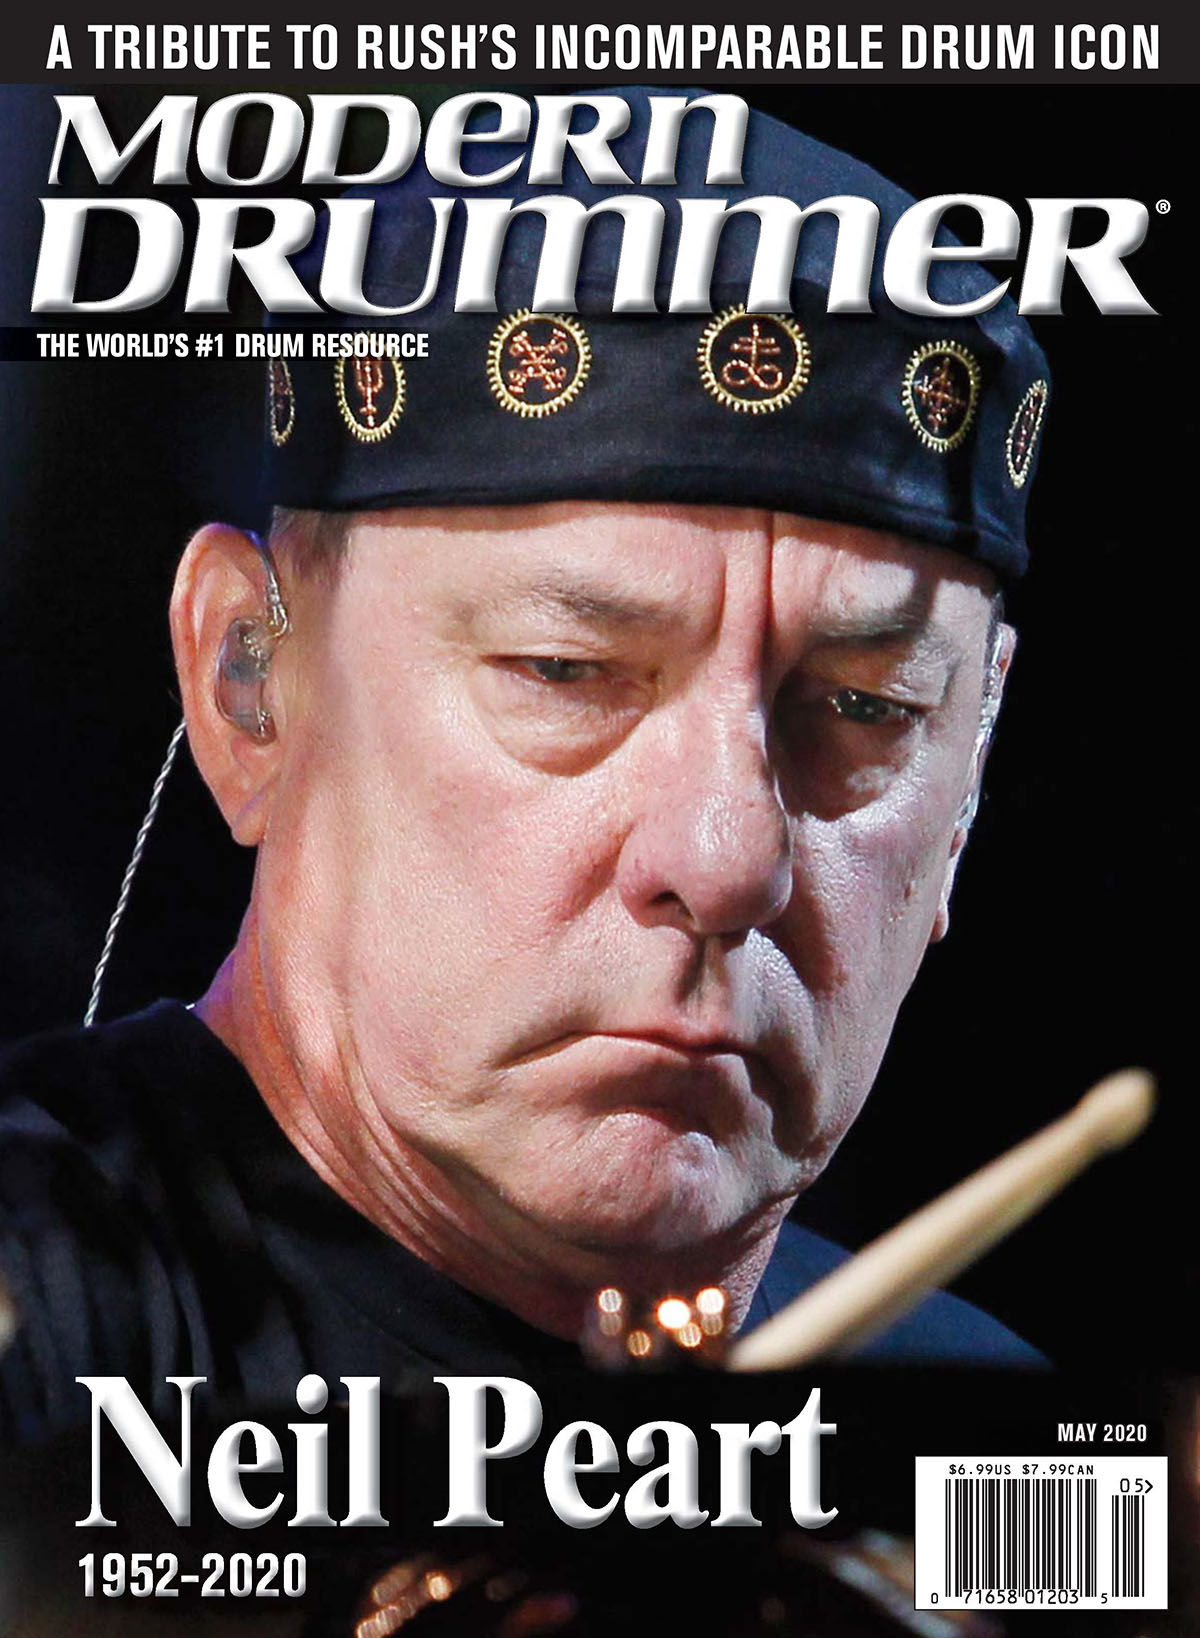 Neil Peart Featured in the May 2020 Issue of Modern Drummer Magazine - Extended Excerpt Now Online